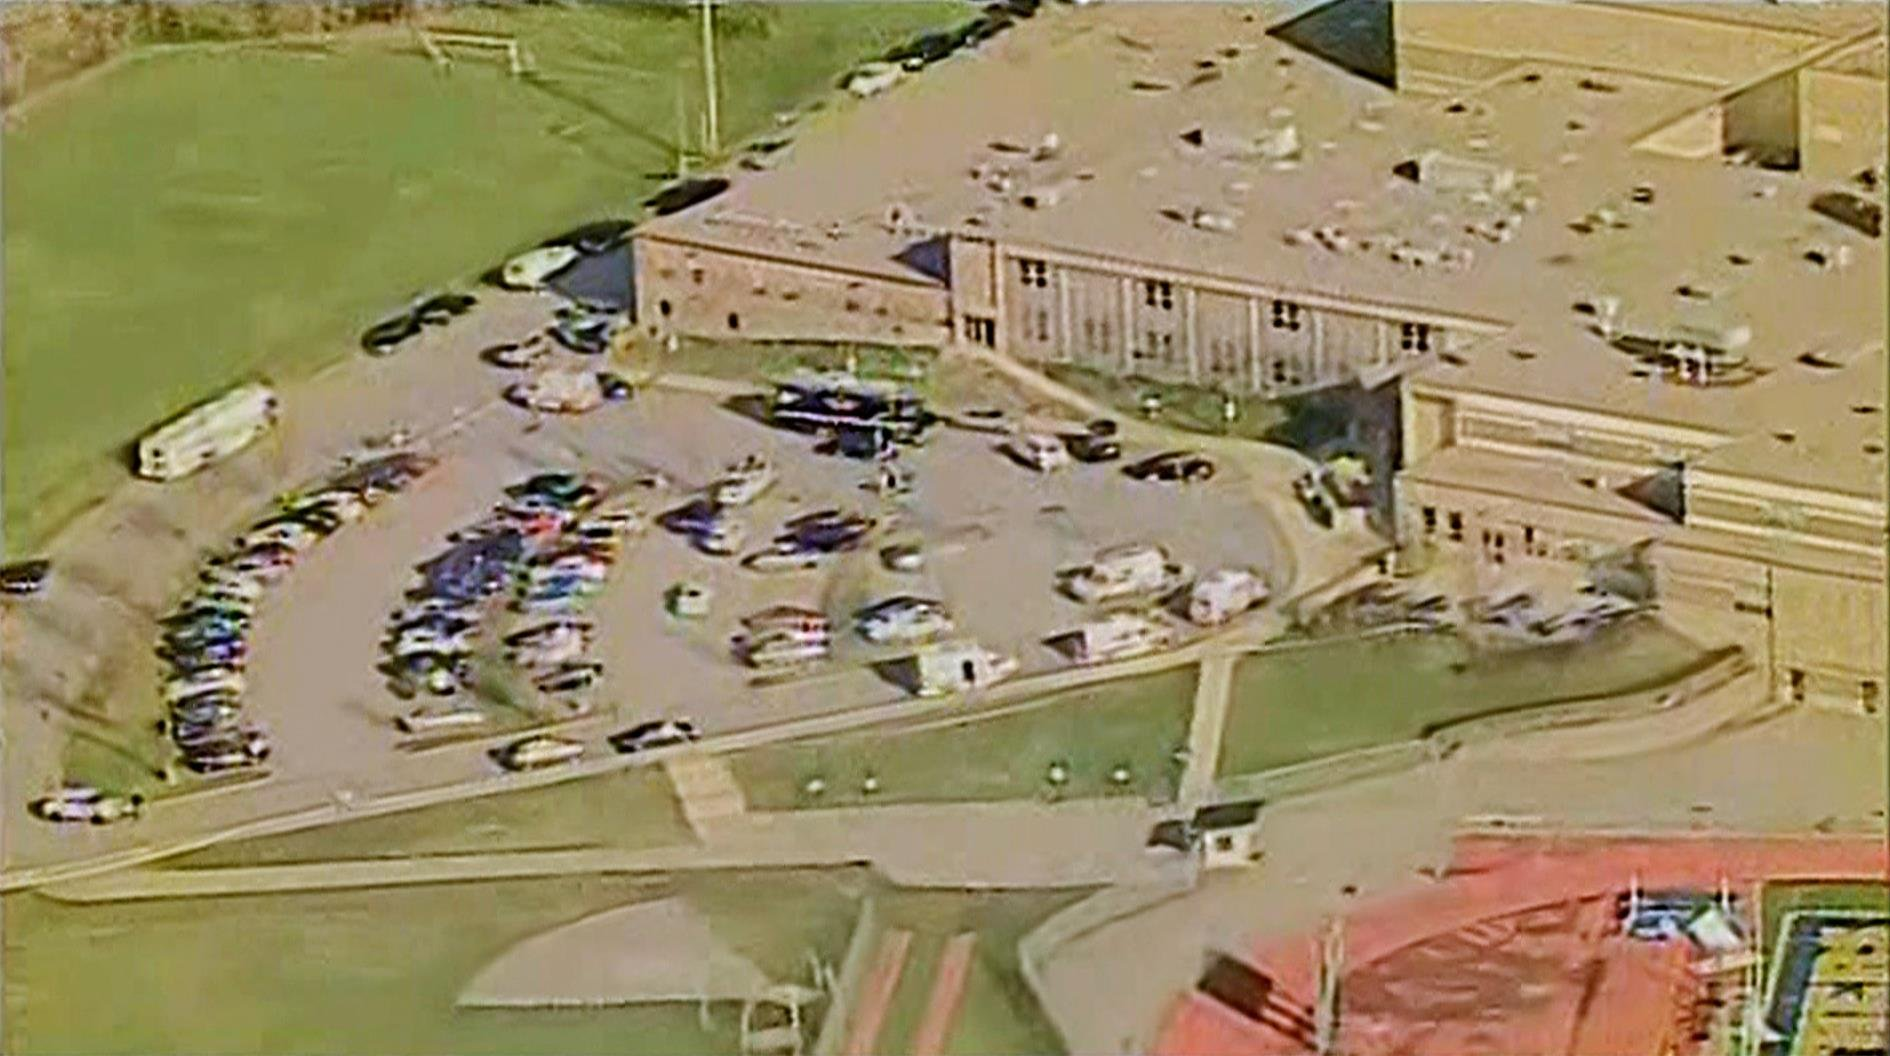 Police have identified and charged a 16-year-old boy accused of stabbing and slashing 21 fellow students and a security guard at a Pennsylvania high school.